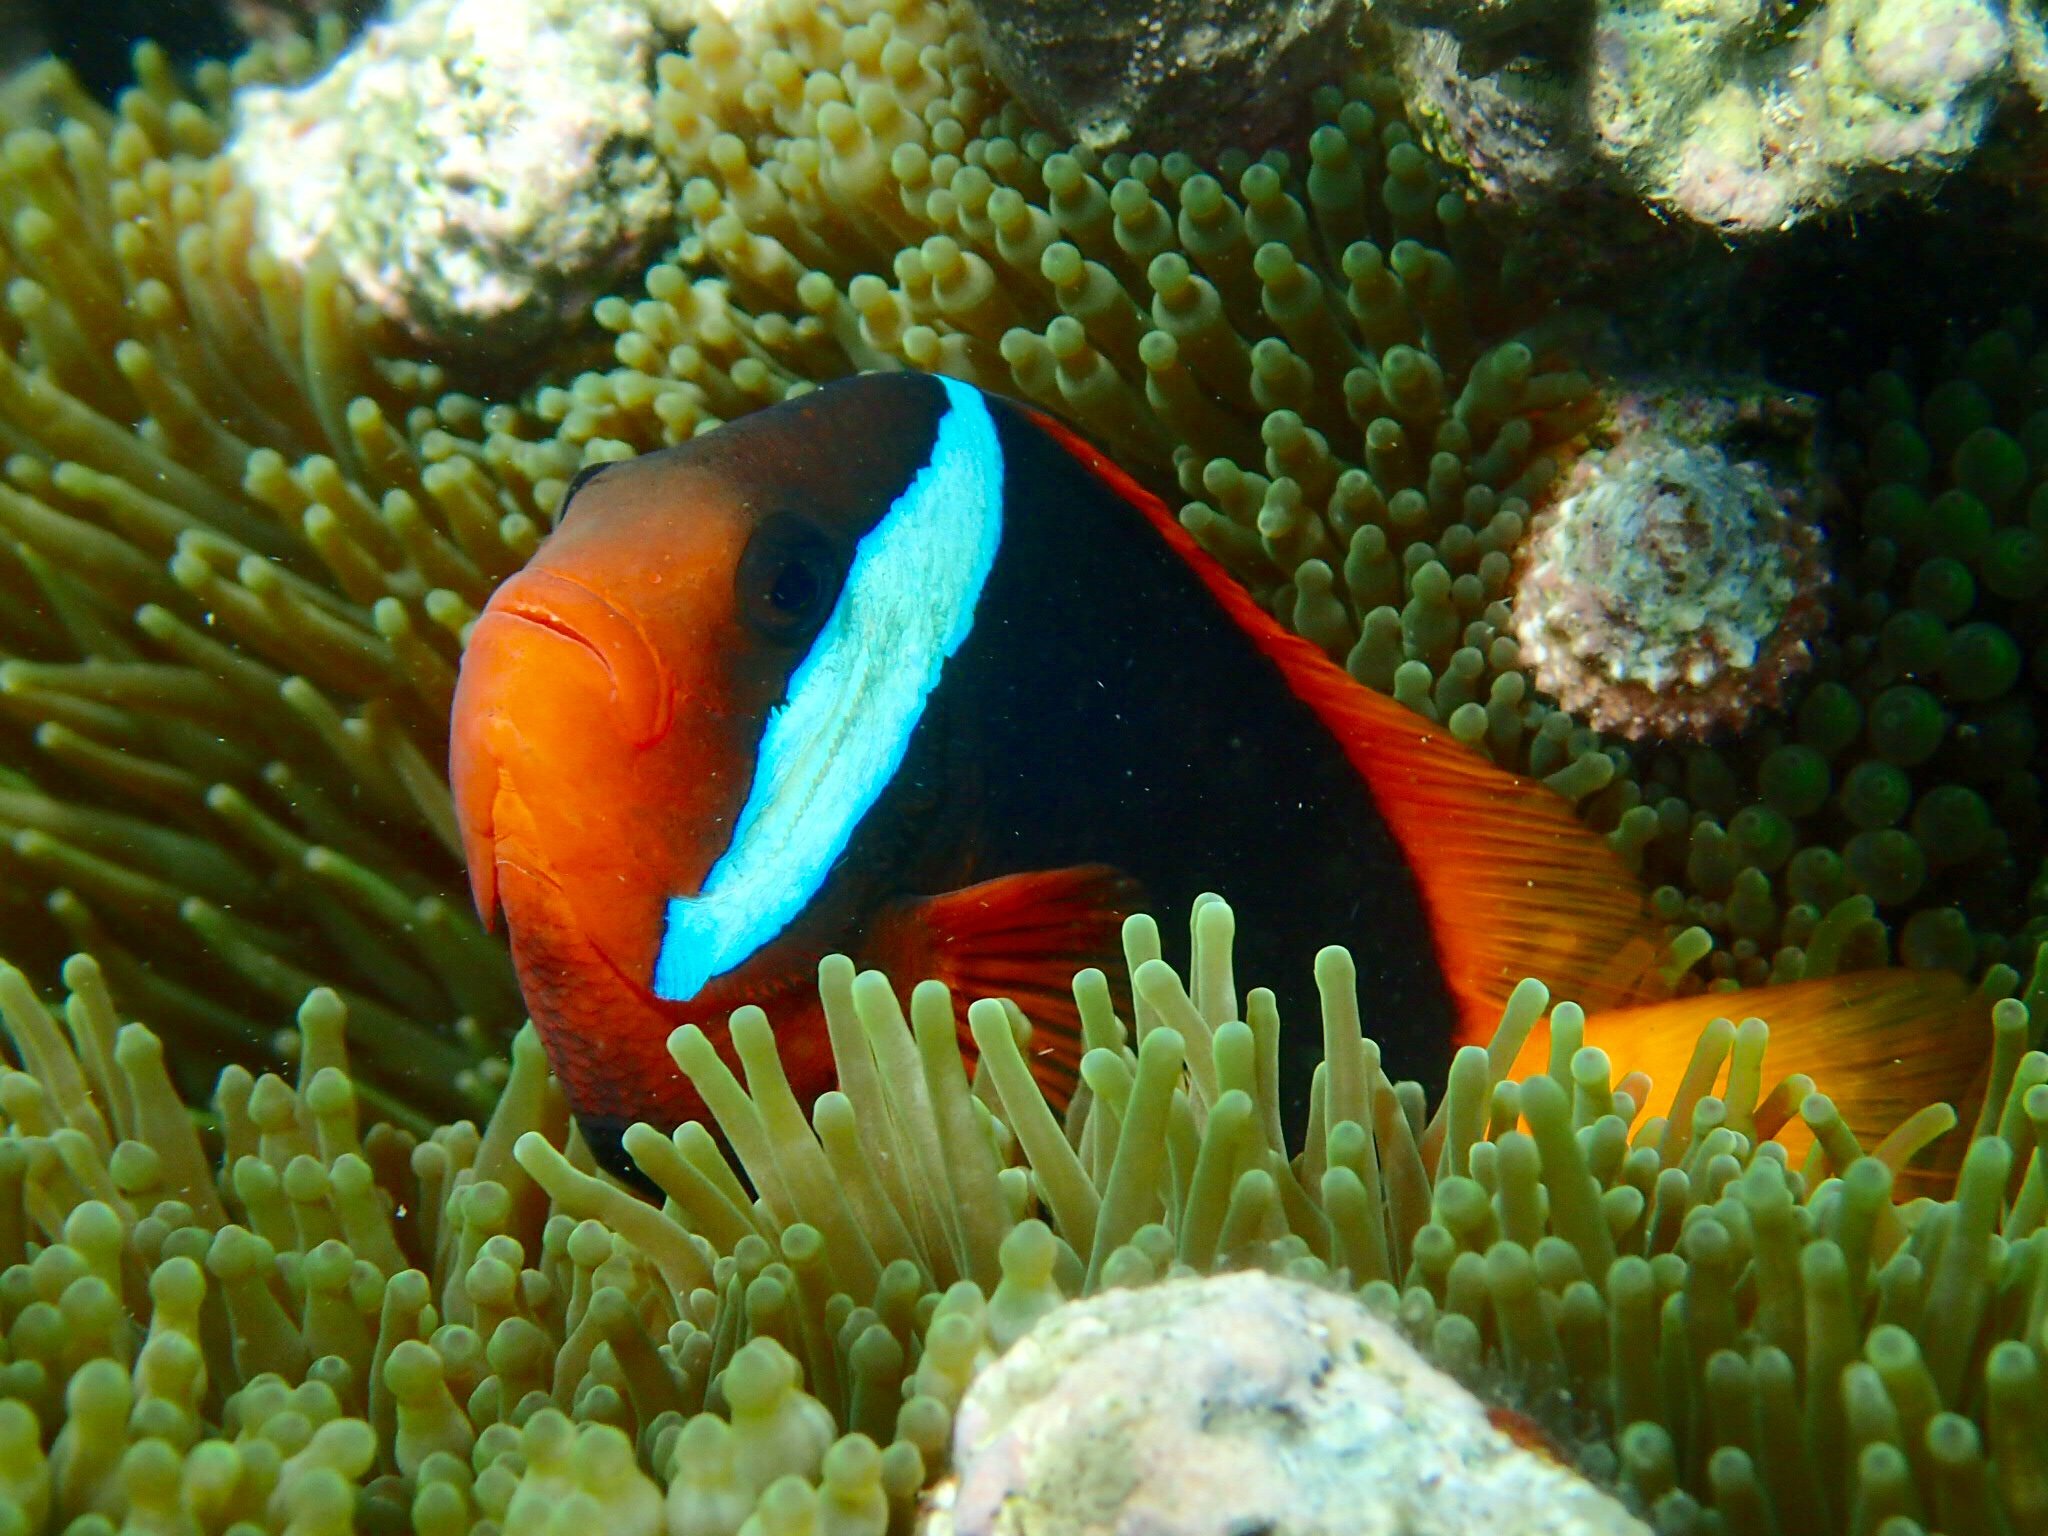 The anemone fish ... and so close!